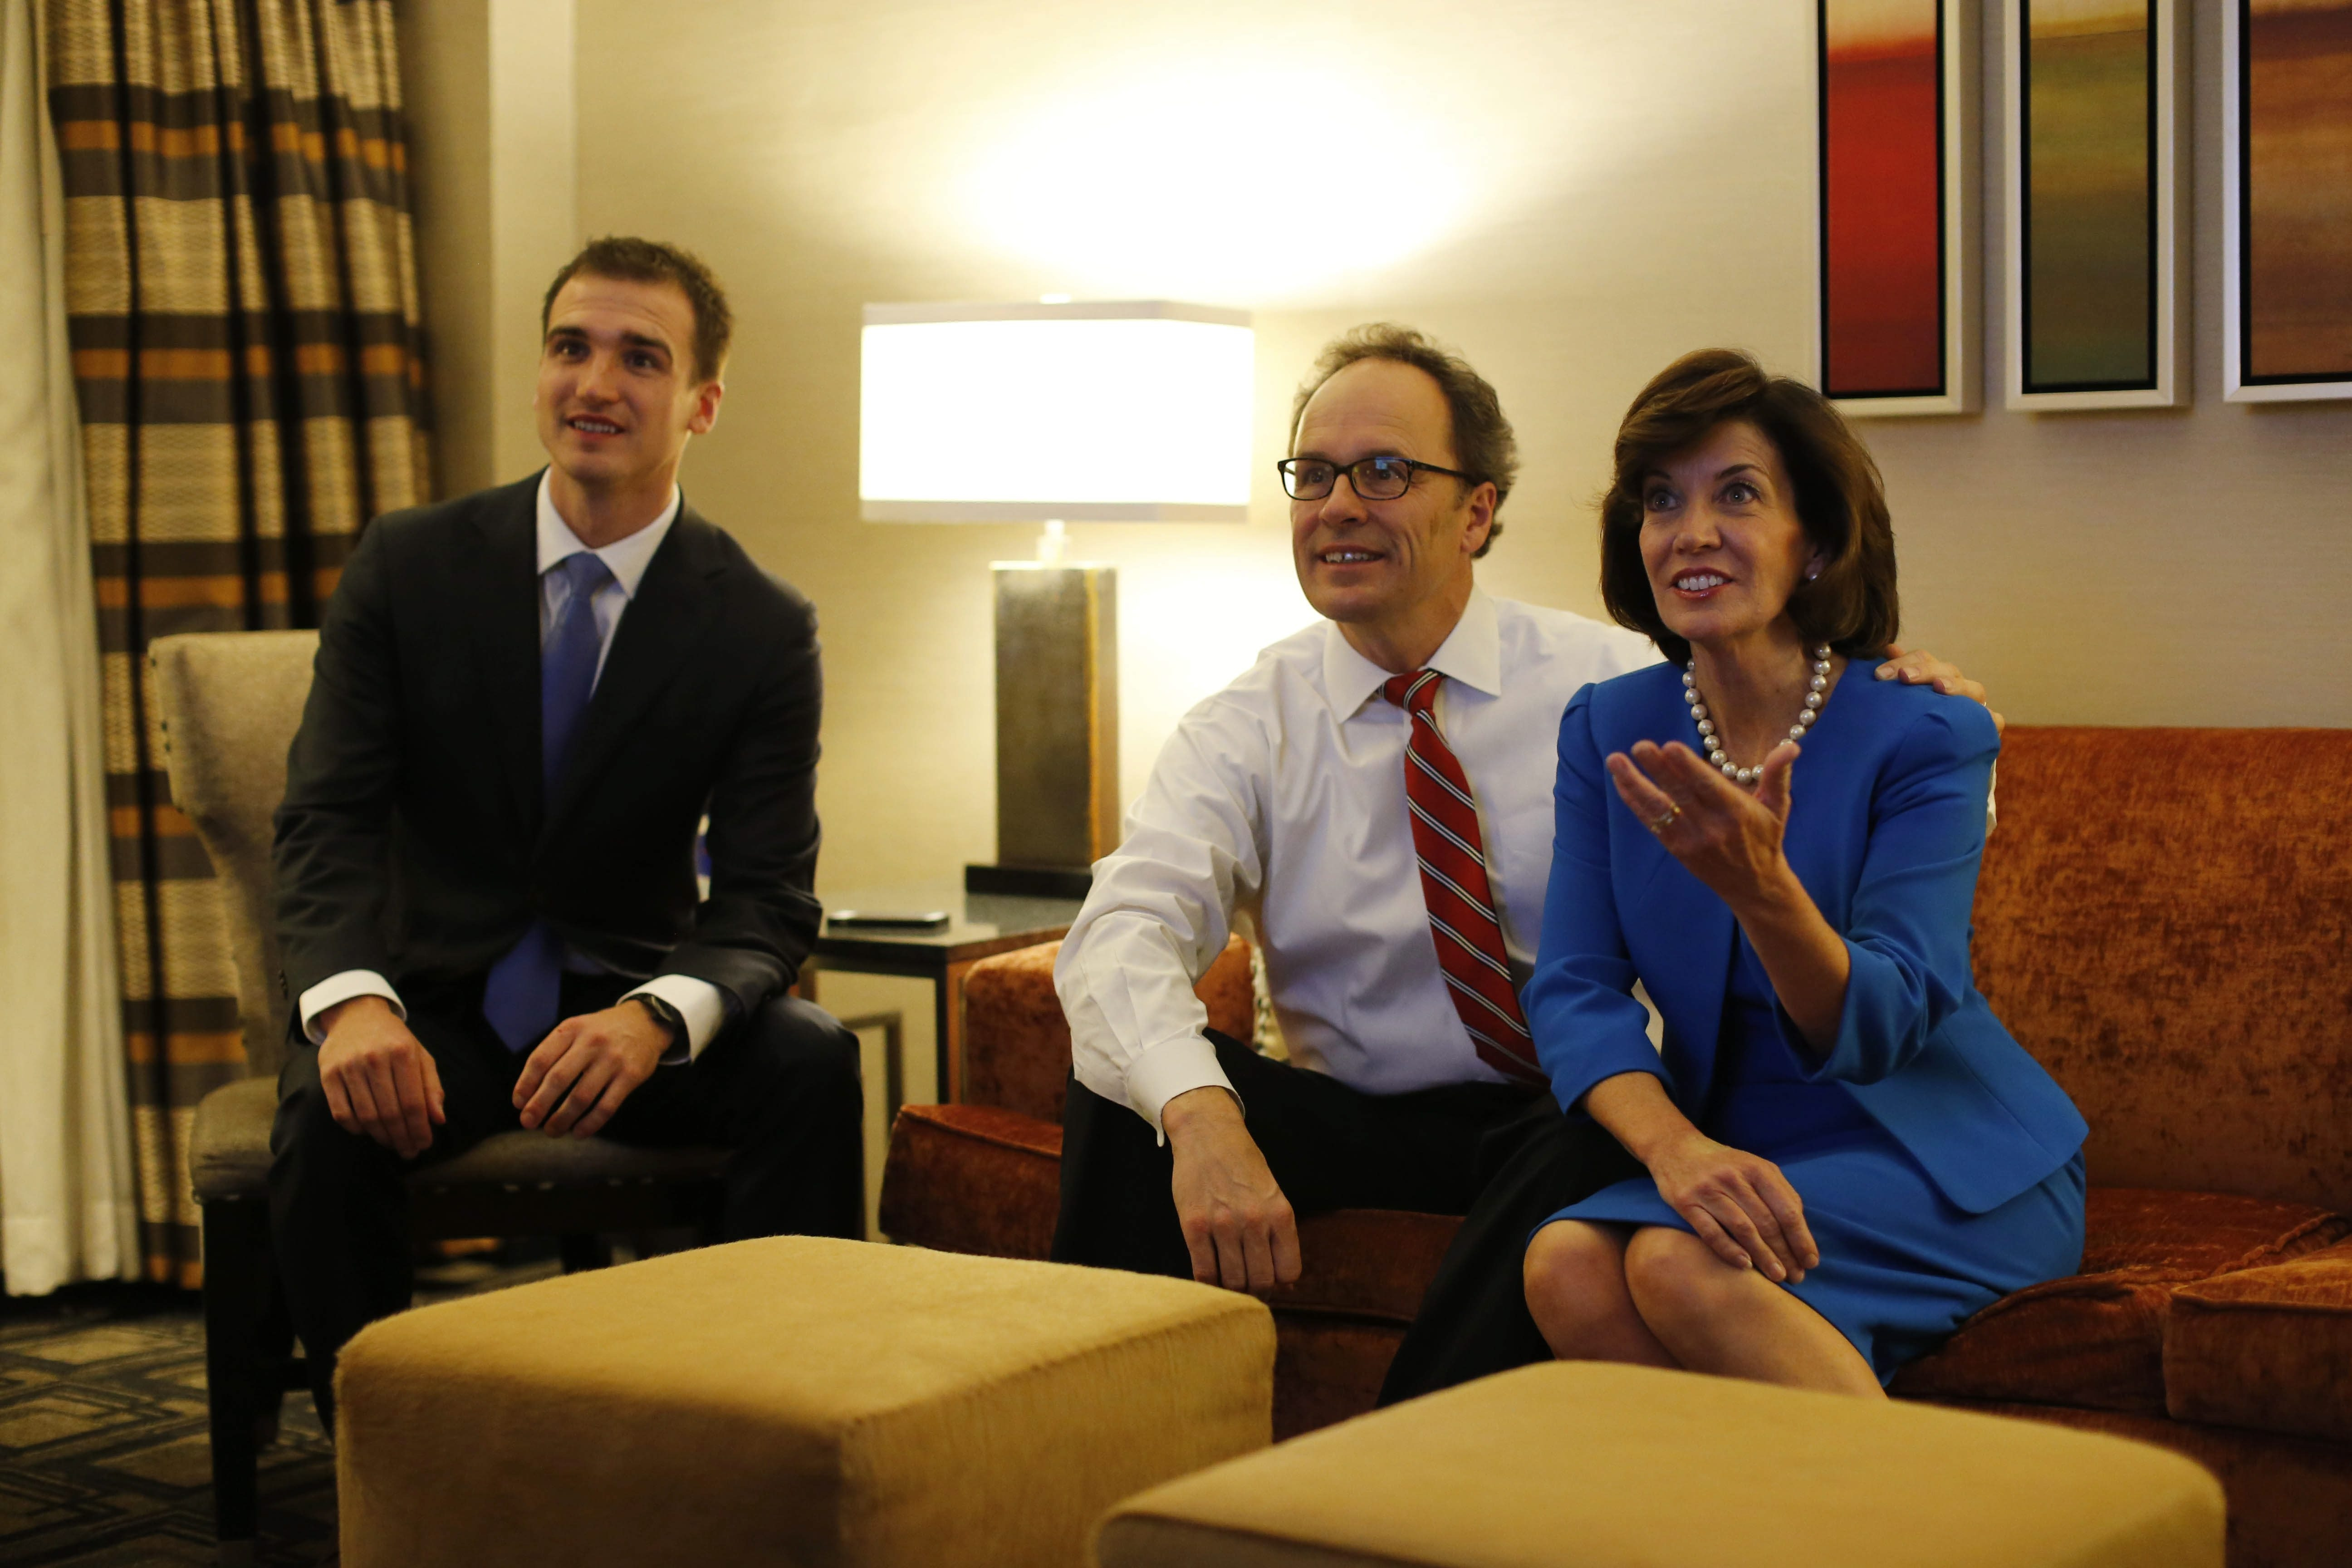 Kathy Hochul watches election returns come in with her husband, U.S. Attorney William Hochul, and their son Will in a room at the Sheraton New York Times Square.